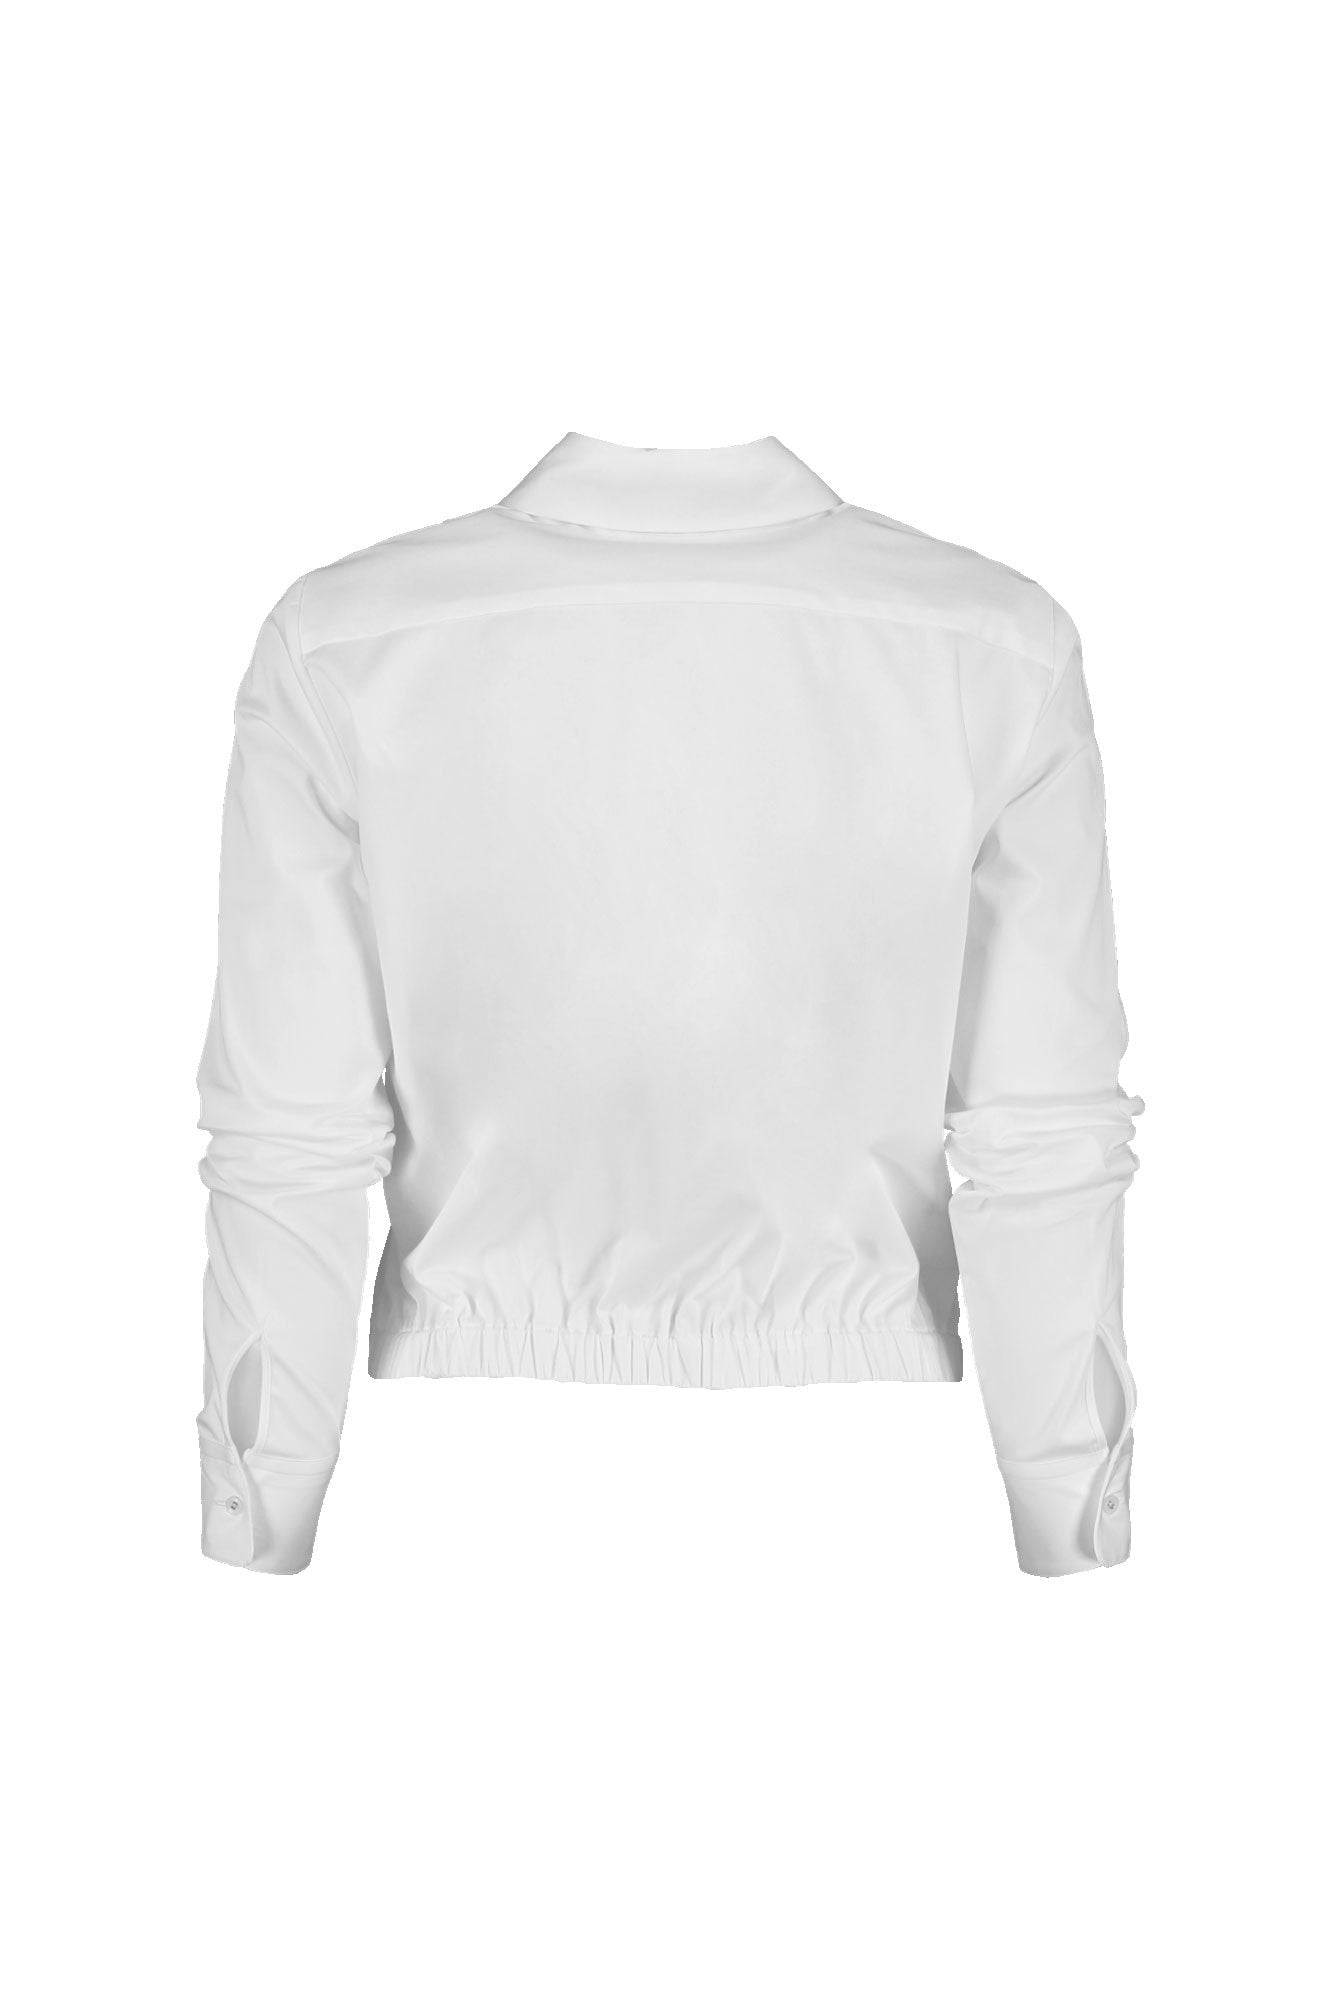 ALEXIS | Kala Top - White